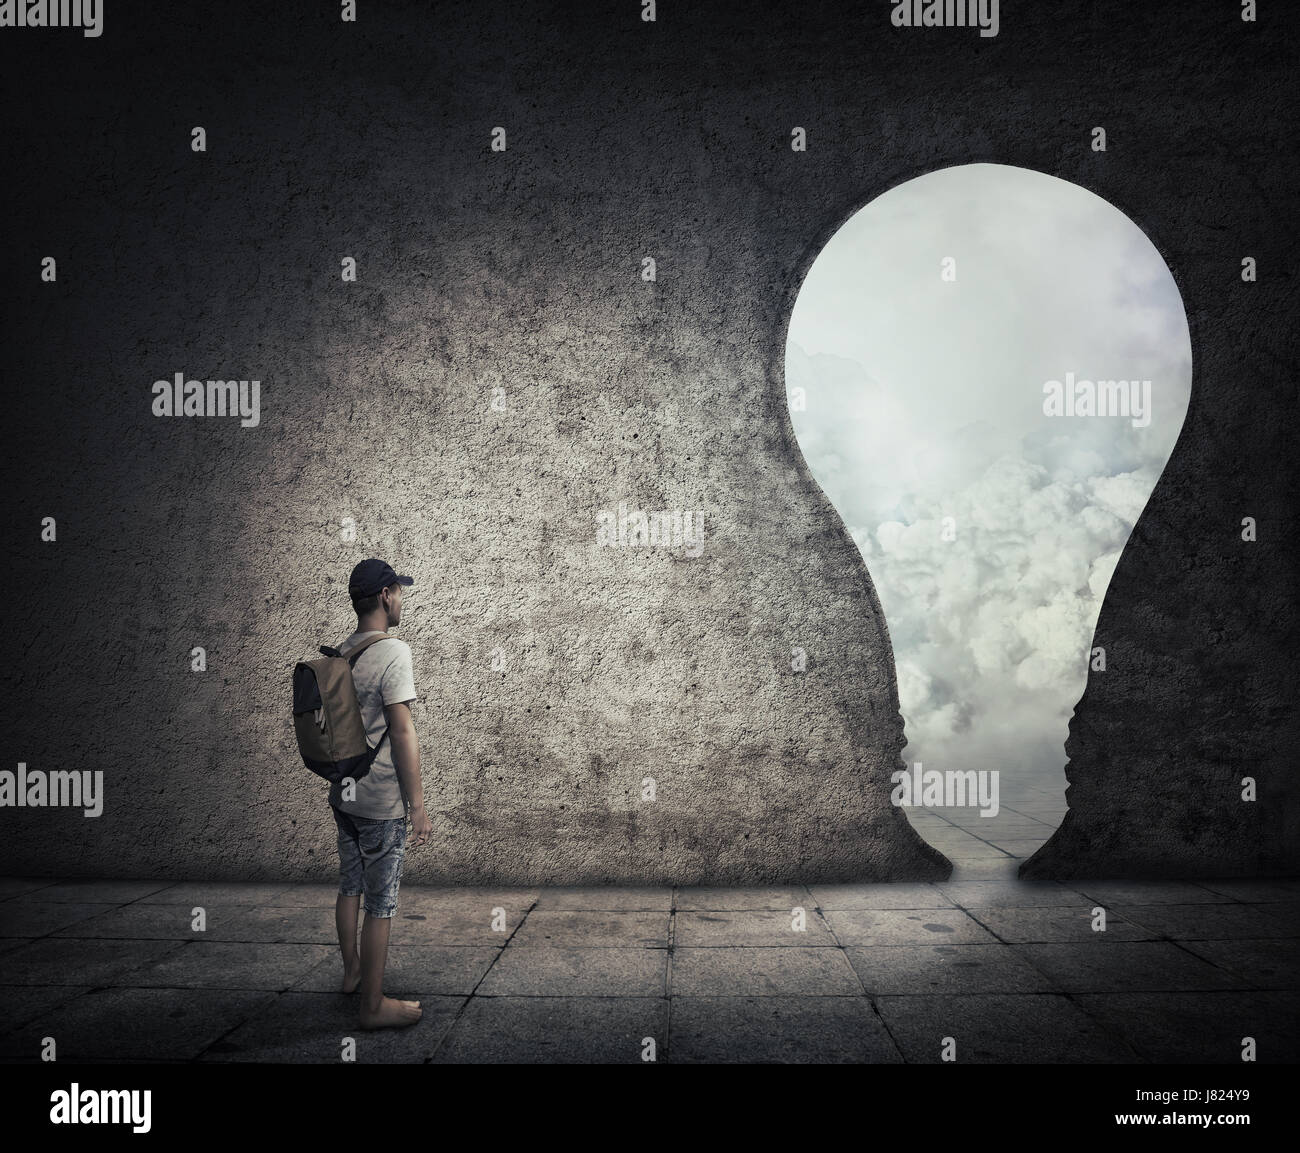 Conceptual image with a person standing in a dark room, in front of a bulb shaped doorway. Escape opportunity, entrance - Stock Image